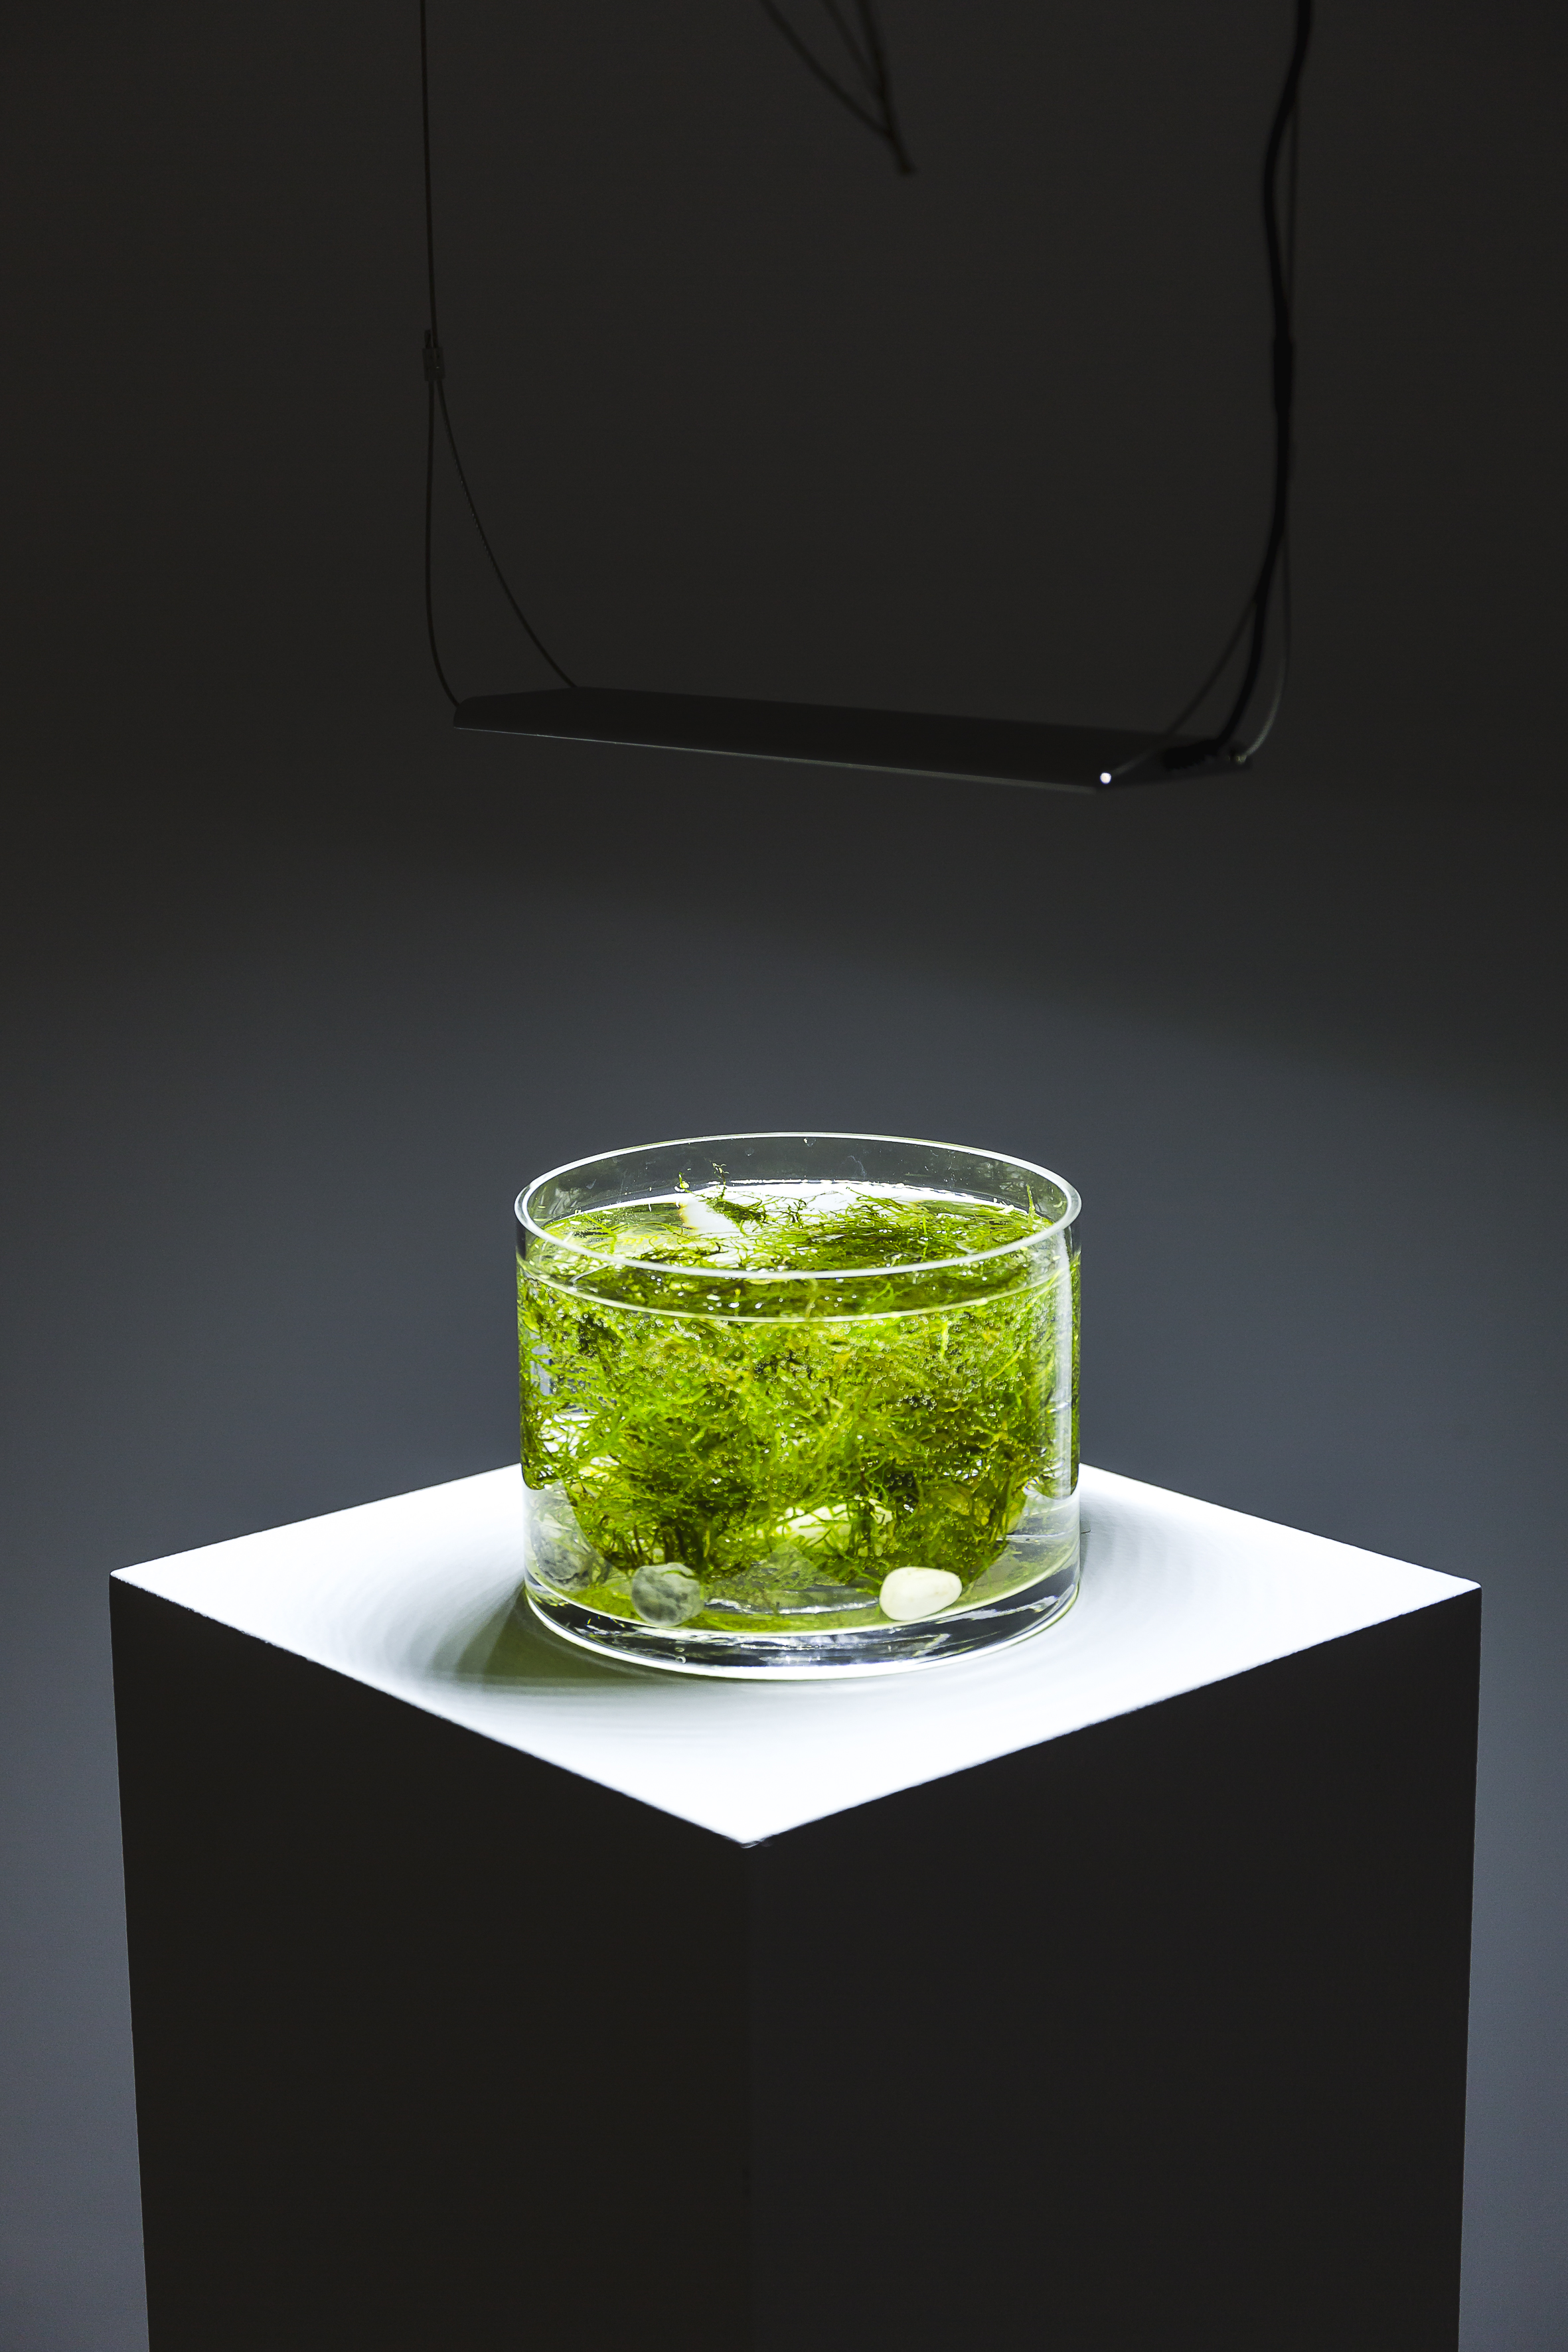 Untitled # 2 , from the series  Holding my breath , 2018, Installation with live video feed, four channel audio, chain, plant matter, water and grow lights, commissioned by Campbelltown Arts Centre. Photography Credit: Document Photography.